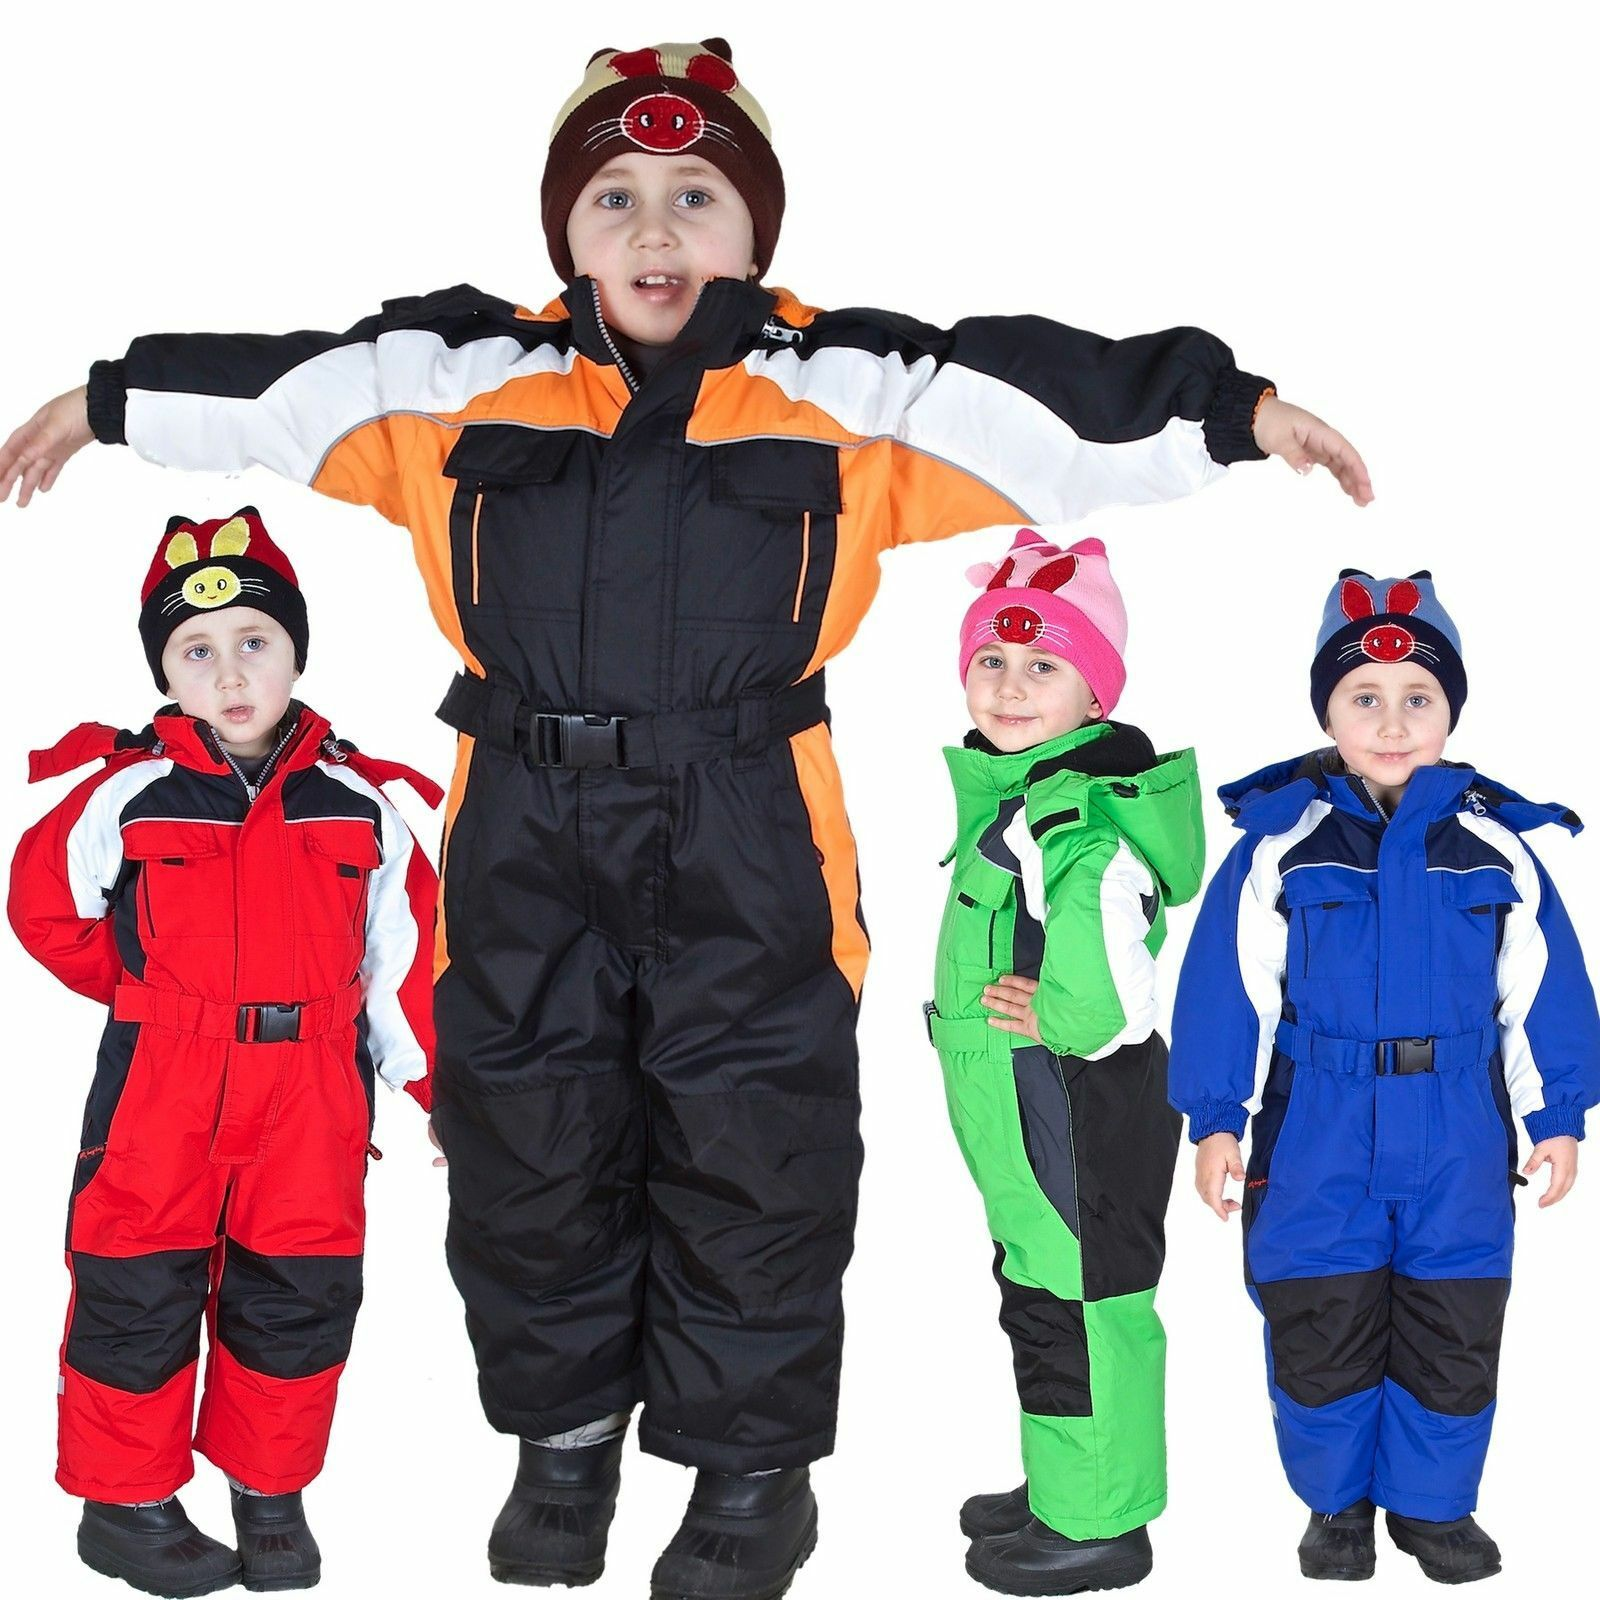 schneeoverall schneeanzug winteranzug skianzug kinder skioverall schnee 1203 neu eur 9 50. Black Bedroom Furniture Sets. Home Design Ideas